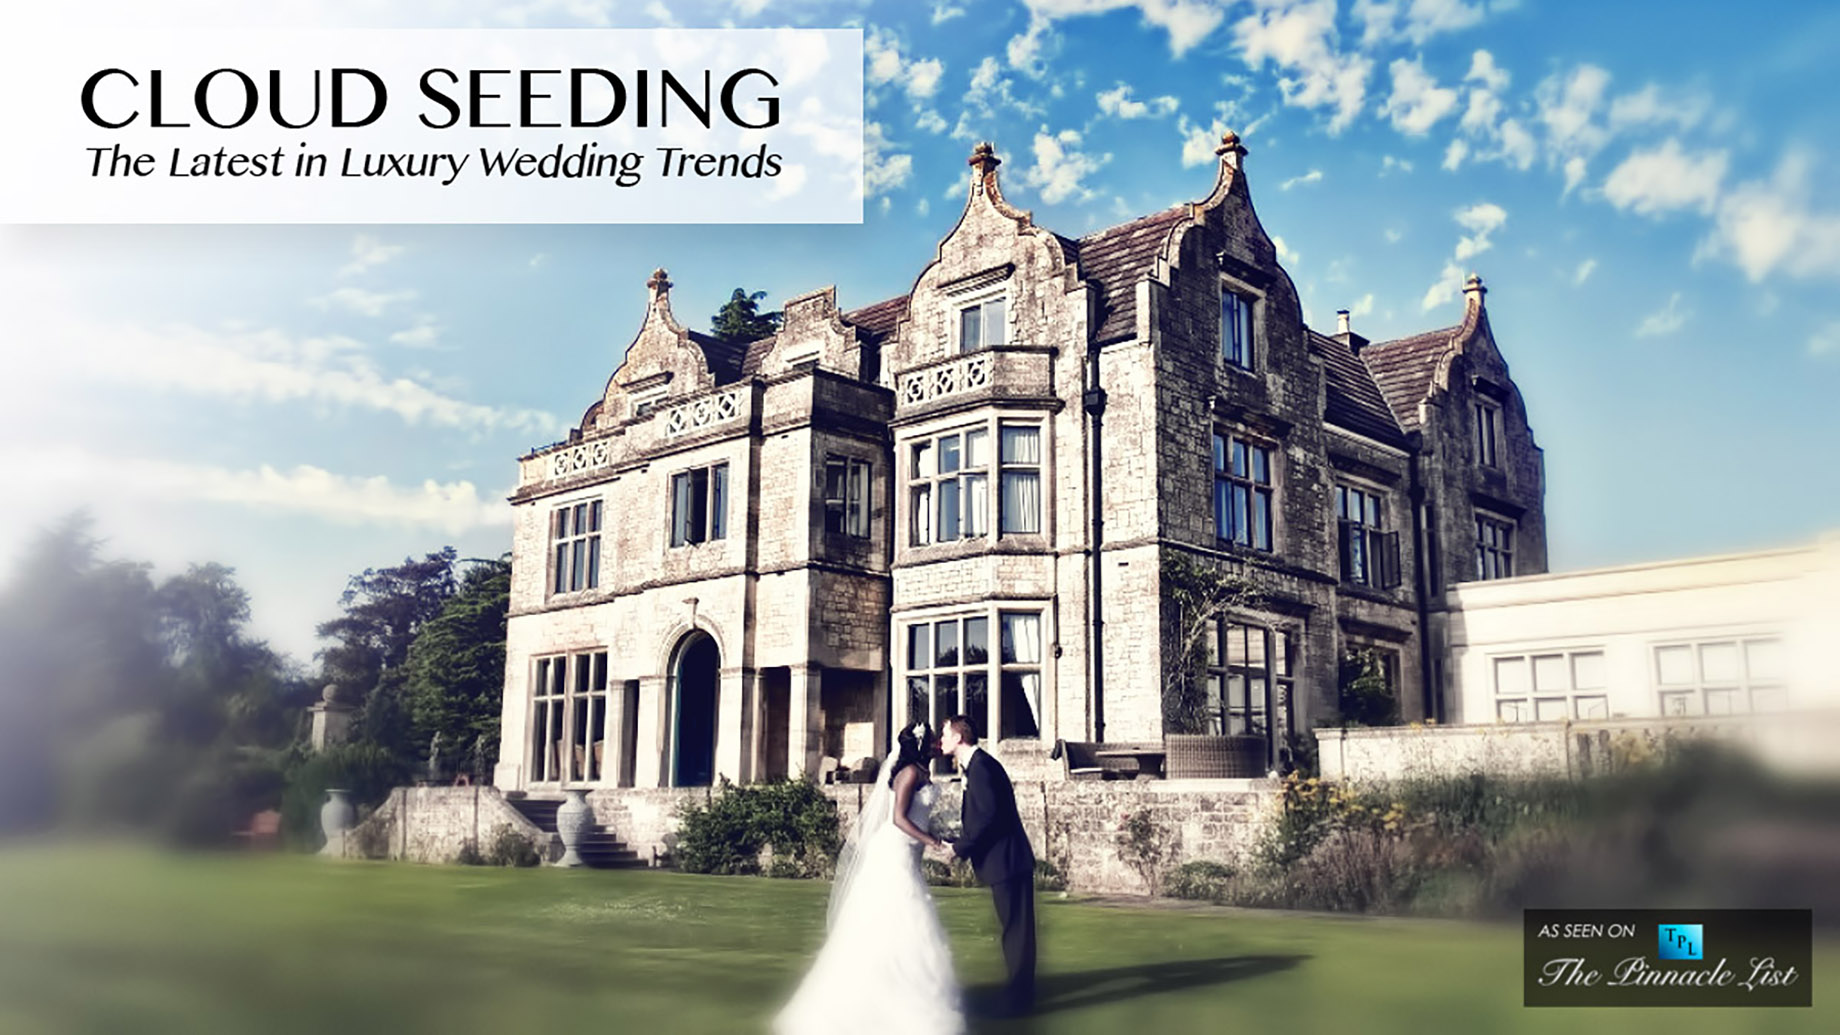 Cloud Seeding - The Latest in Luxury Wedding Trends